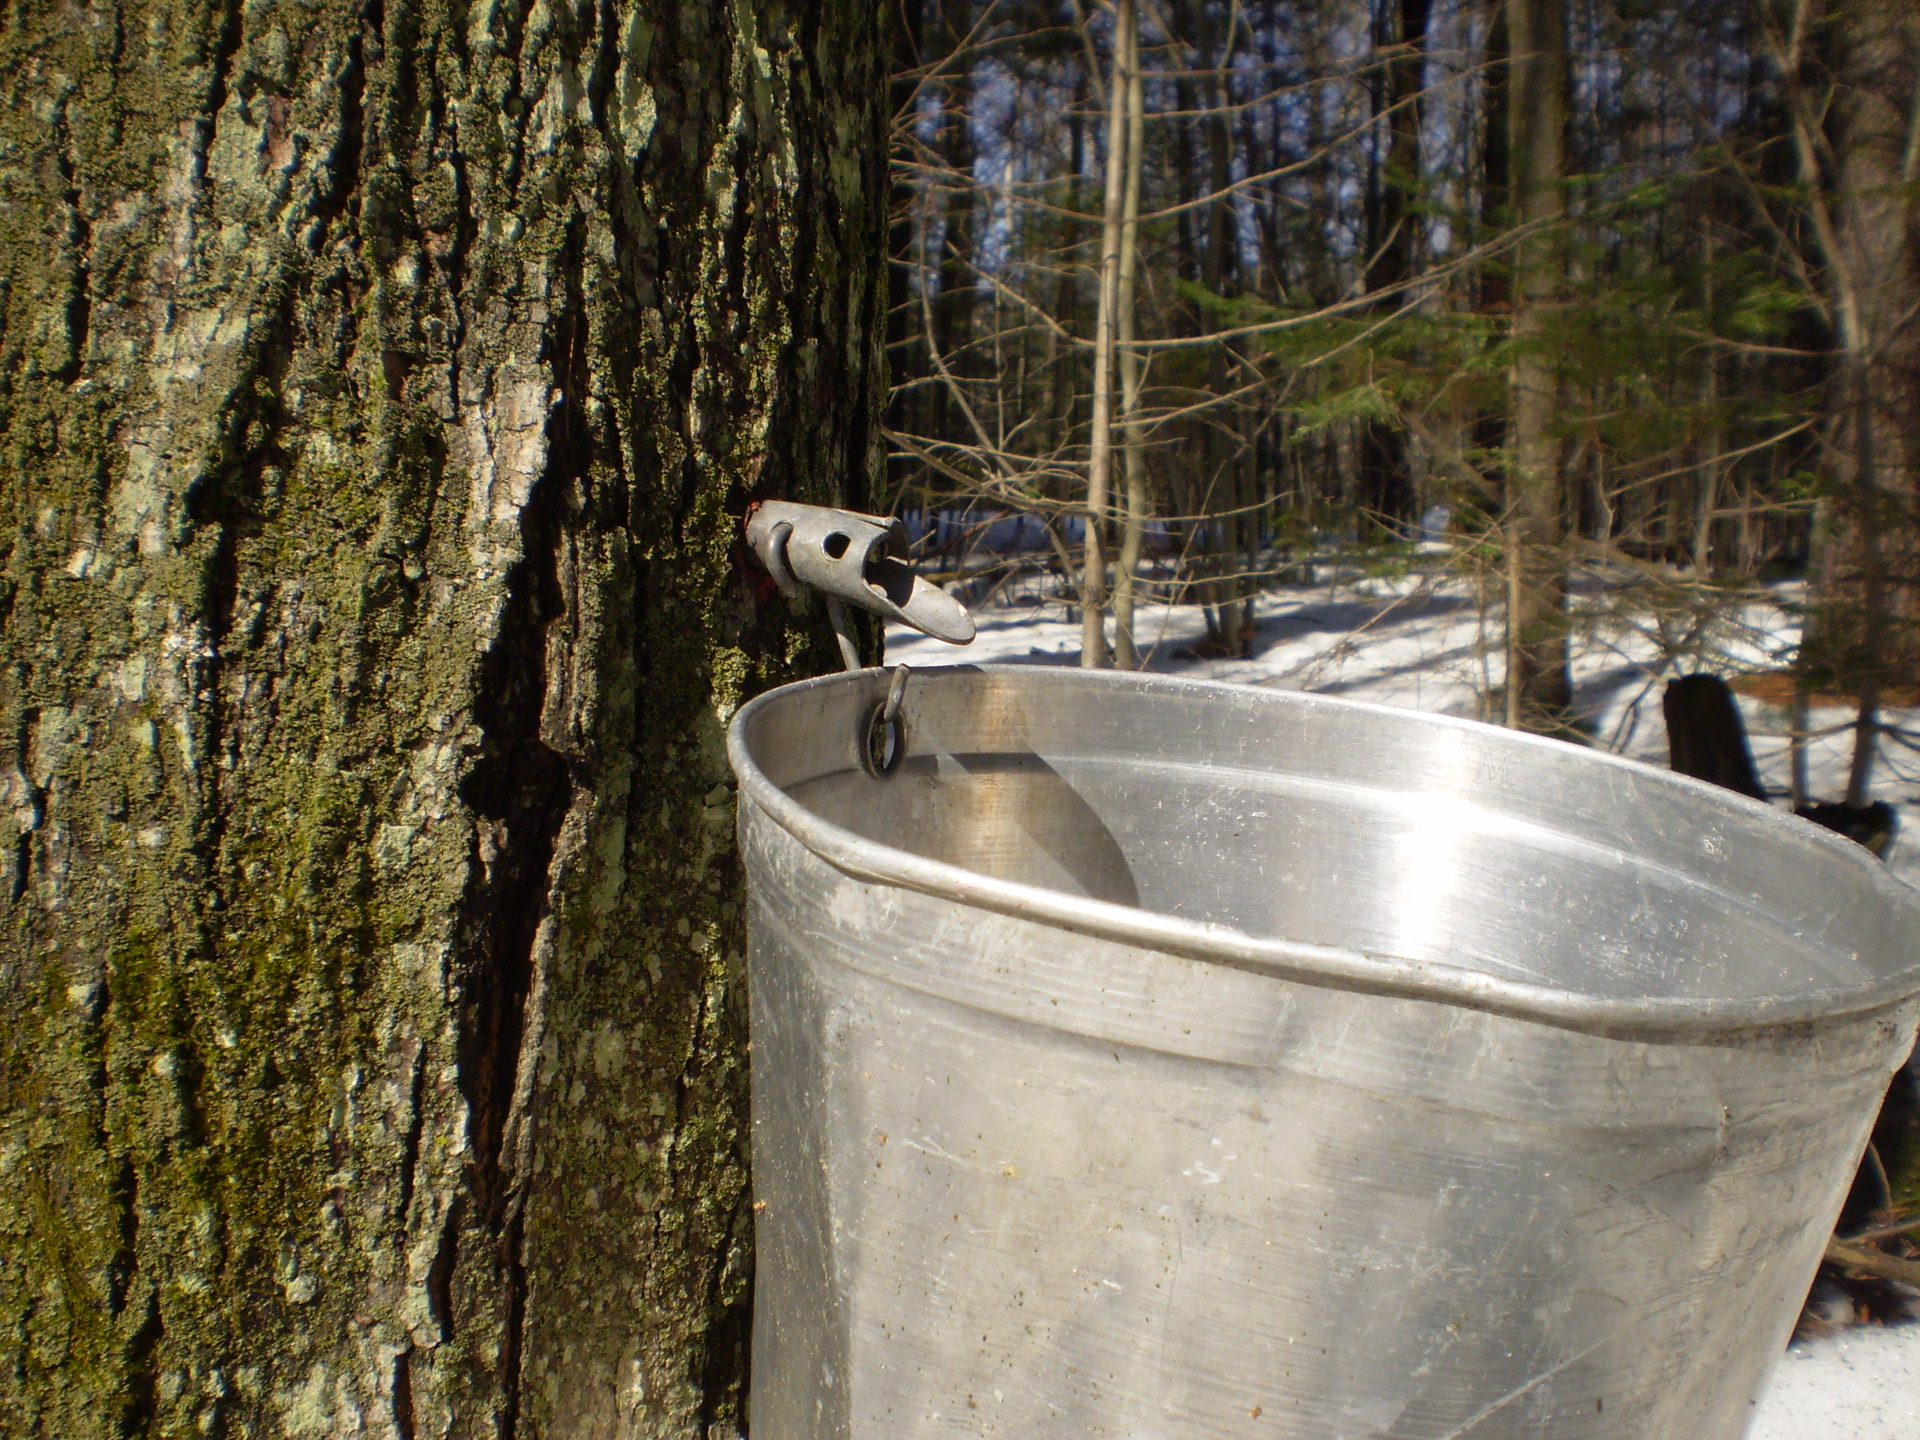 Boiler attached to a maple tree. Photo is in the Public Domain.